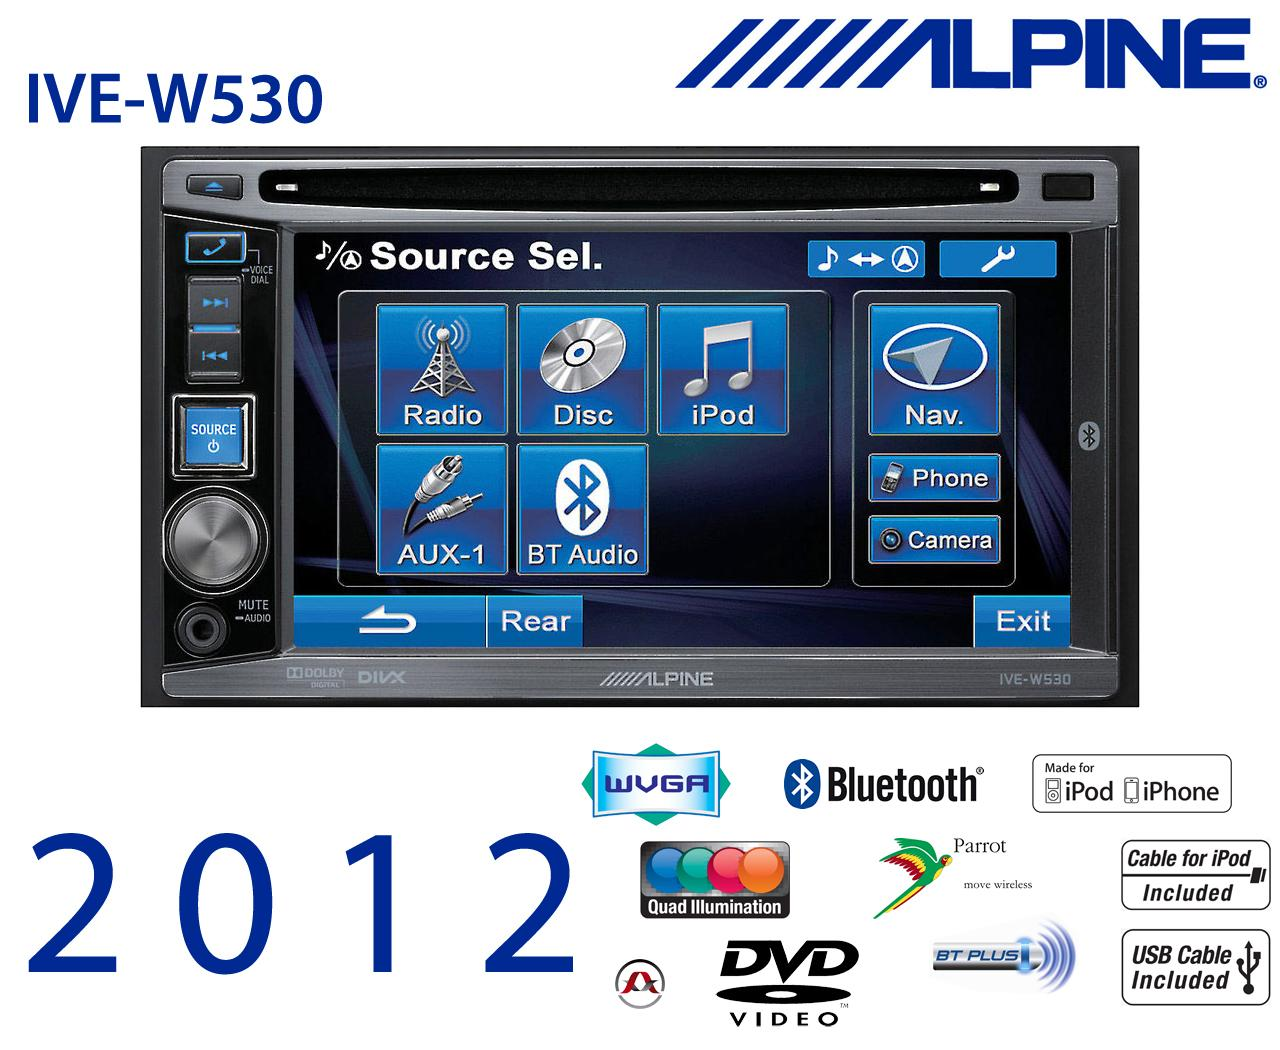 autoradio alpine autoradio ecran ive w530r station multimedia embarquee dvd divx usb. Black Bedroom Furniture Sets. Home Design Ideas